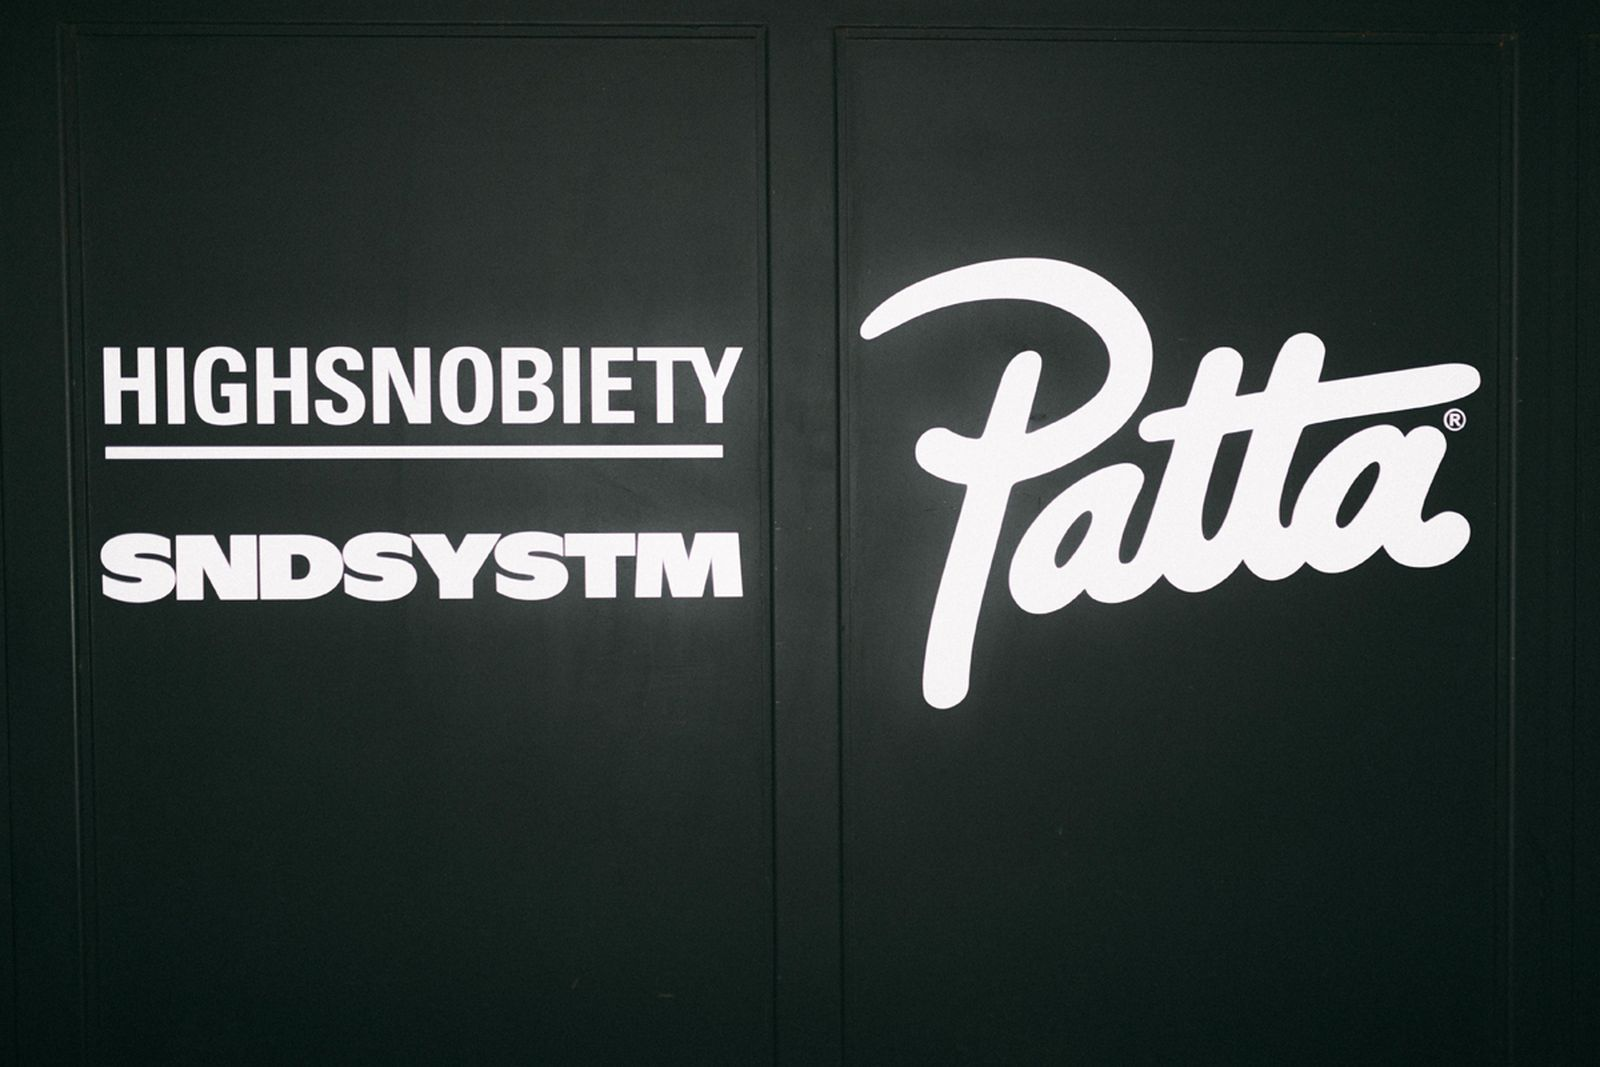 patta nyc afterparty Pop-Up Stüssy carhartt wip